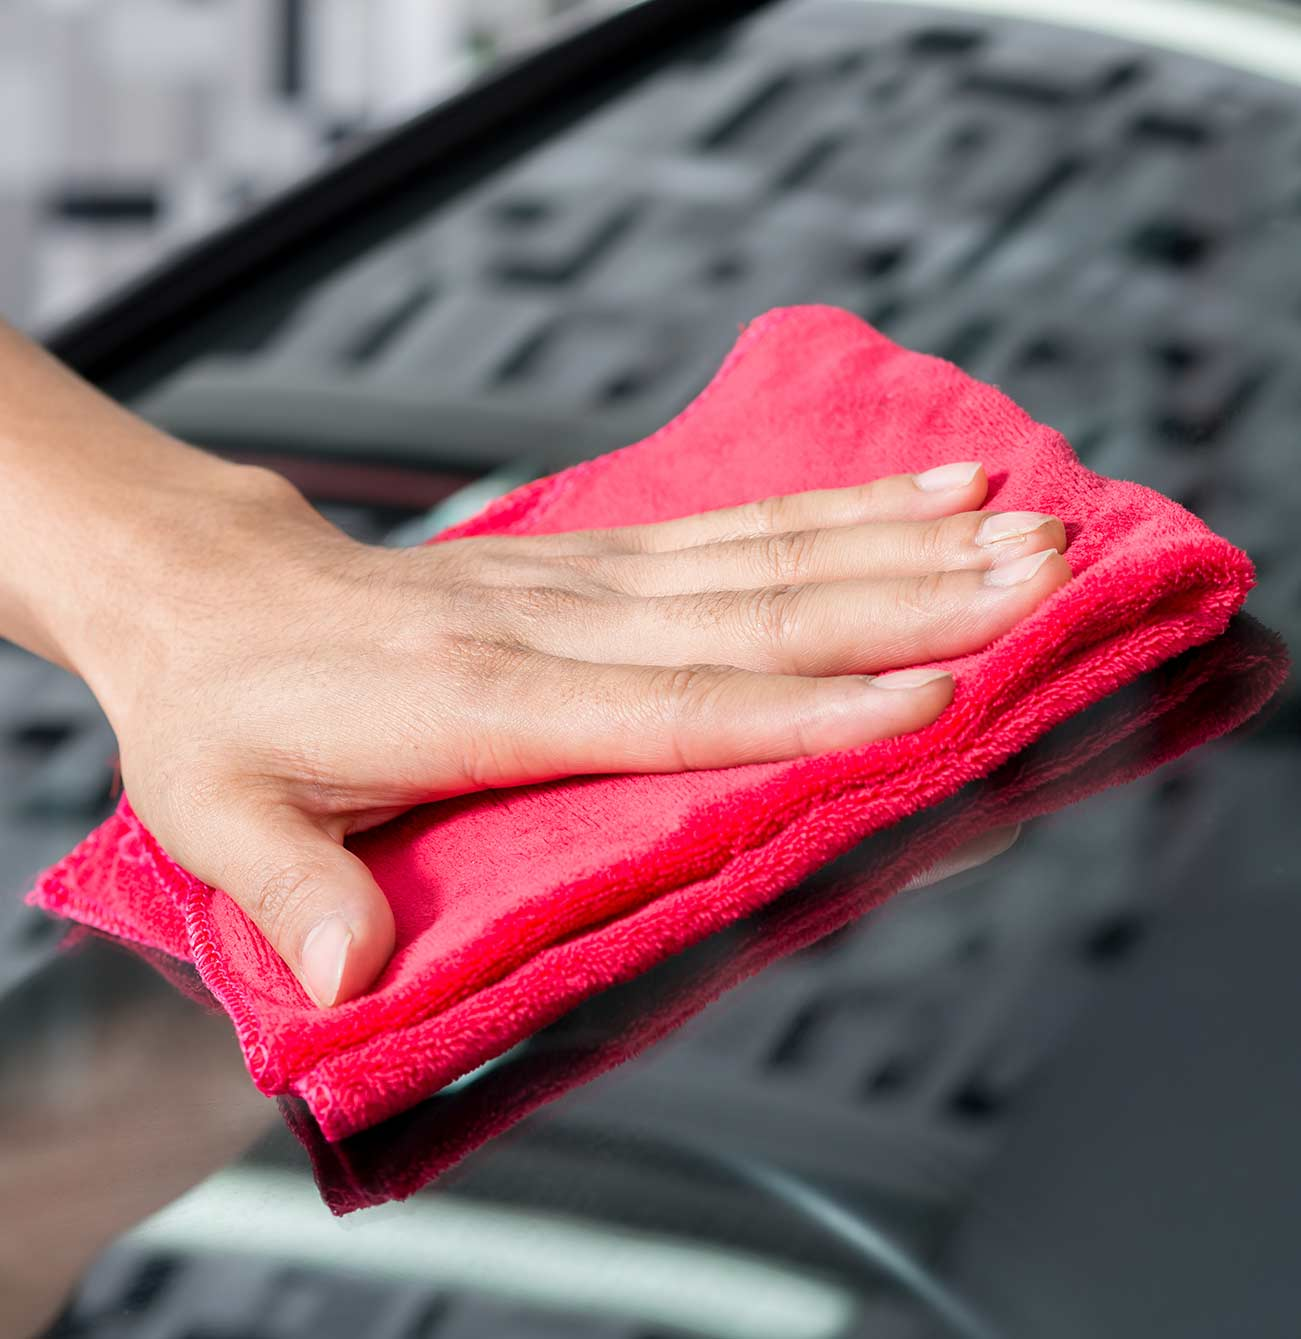 Wiping with Taylor Auto Glass